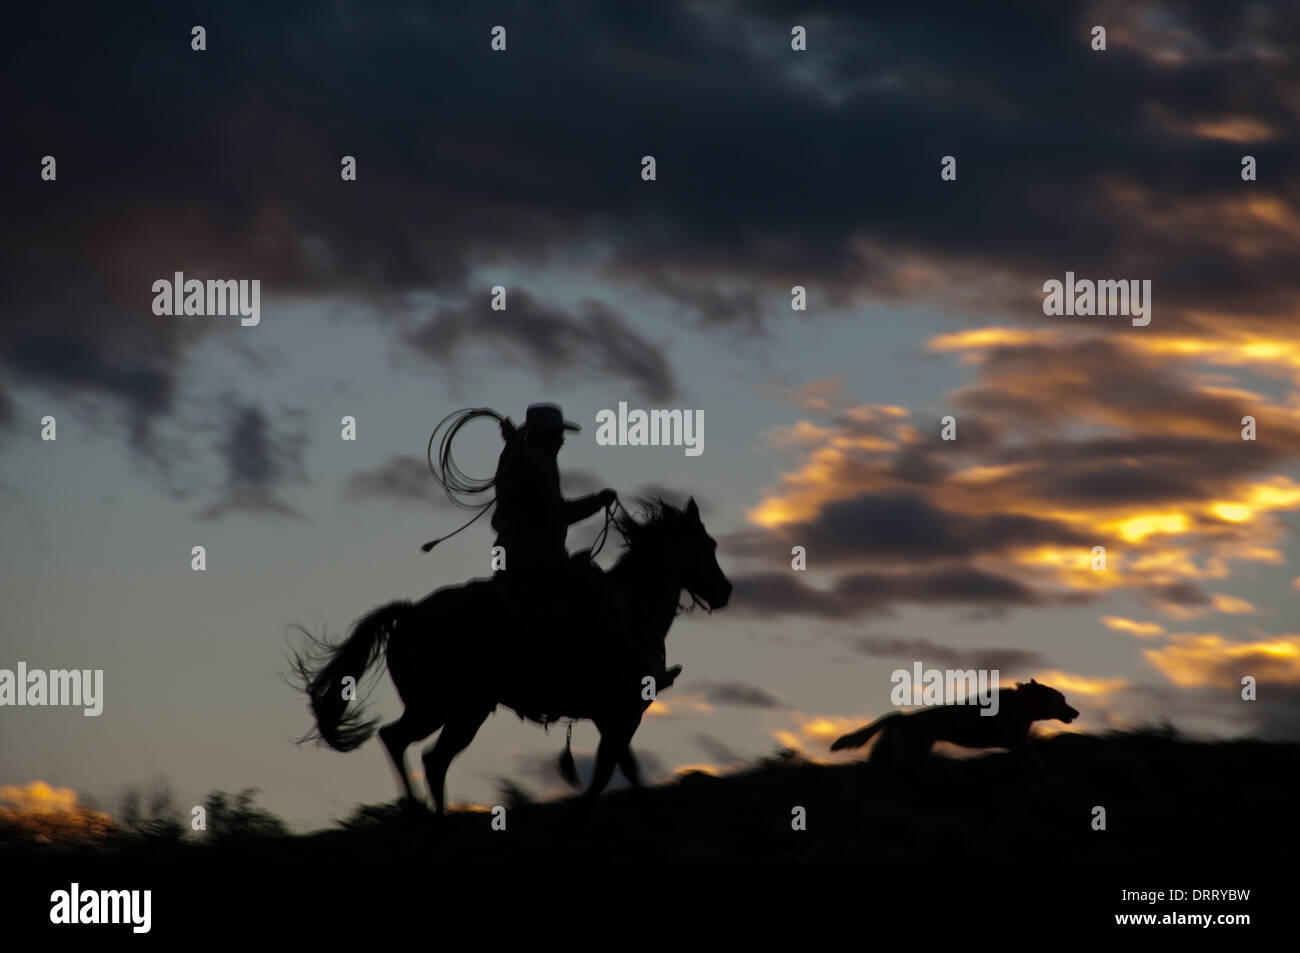 Cowboy with lariat prepares to lasso a horse at dusk,  while a dog runs ahead of him, in the Bighorn Mountains of Wyoming - Stock Image